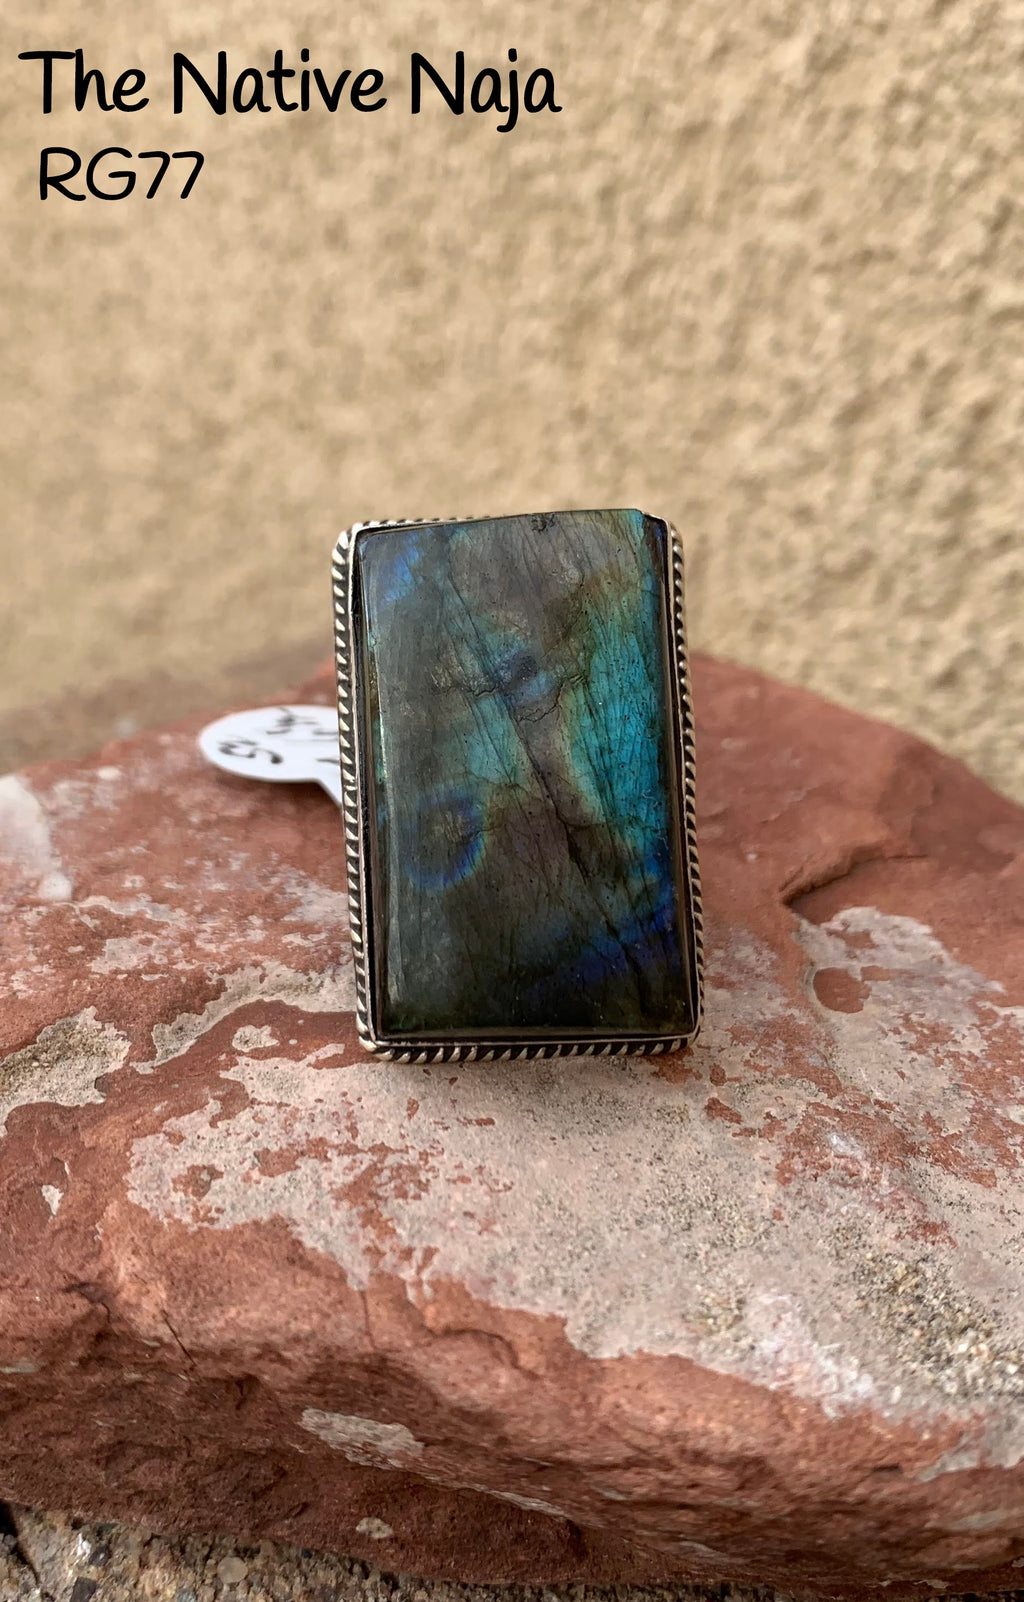 Genuine Navajo Labradorite & Roped Sterling Silver Ring Size 6 1/2 RG77